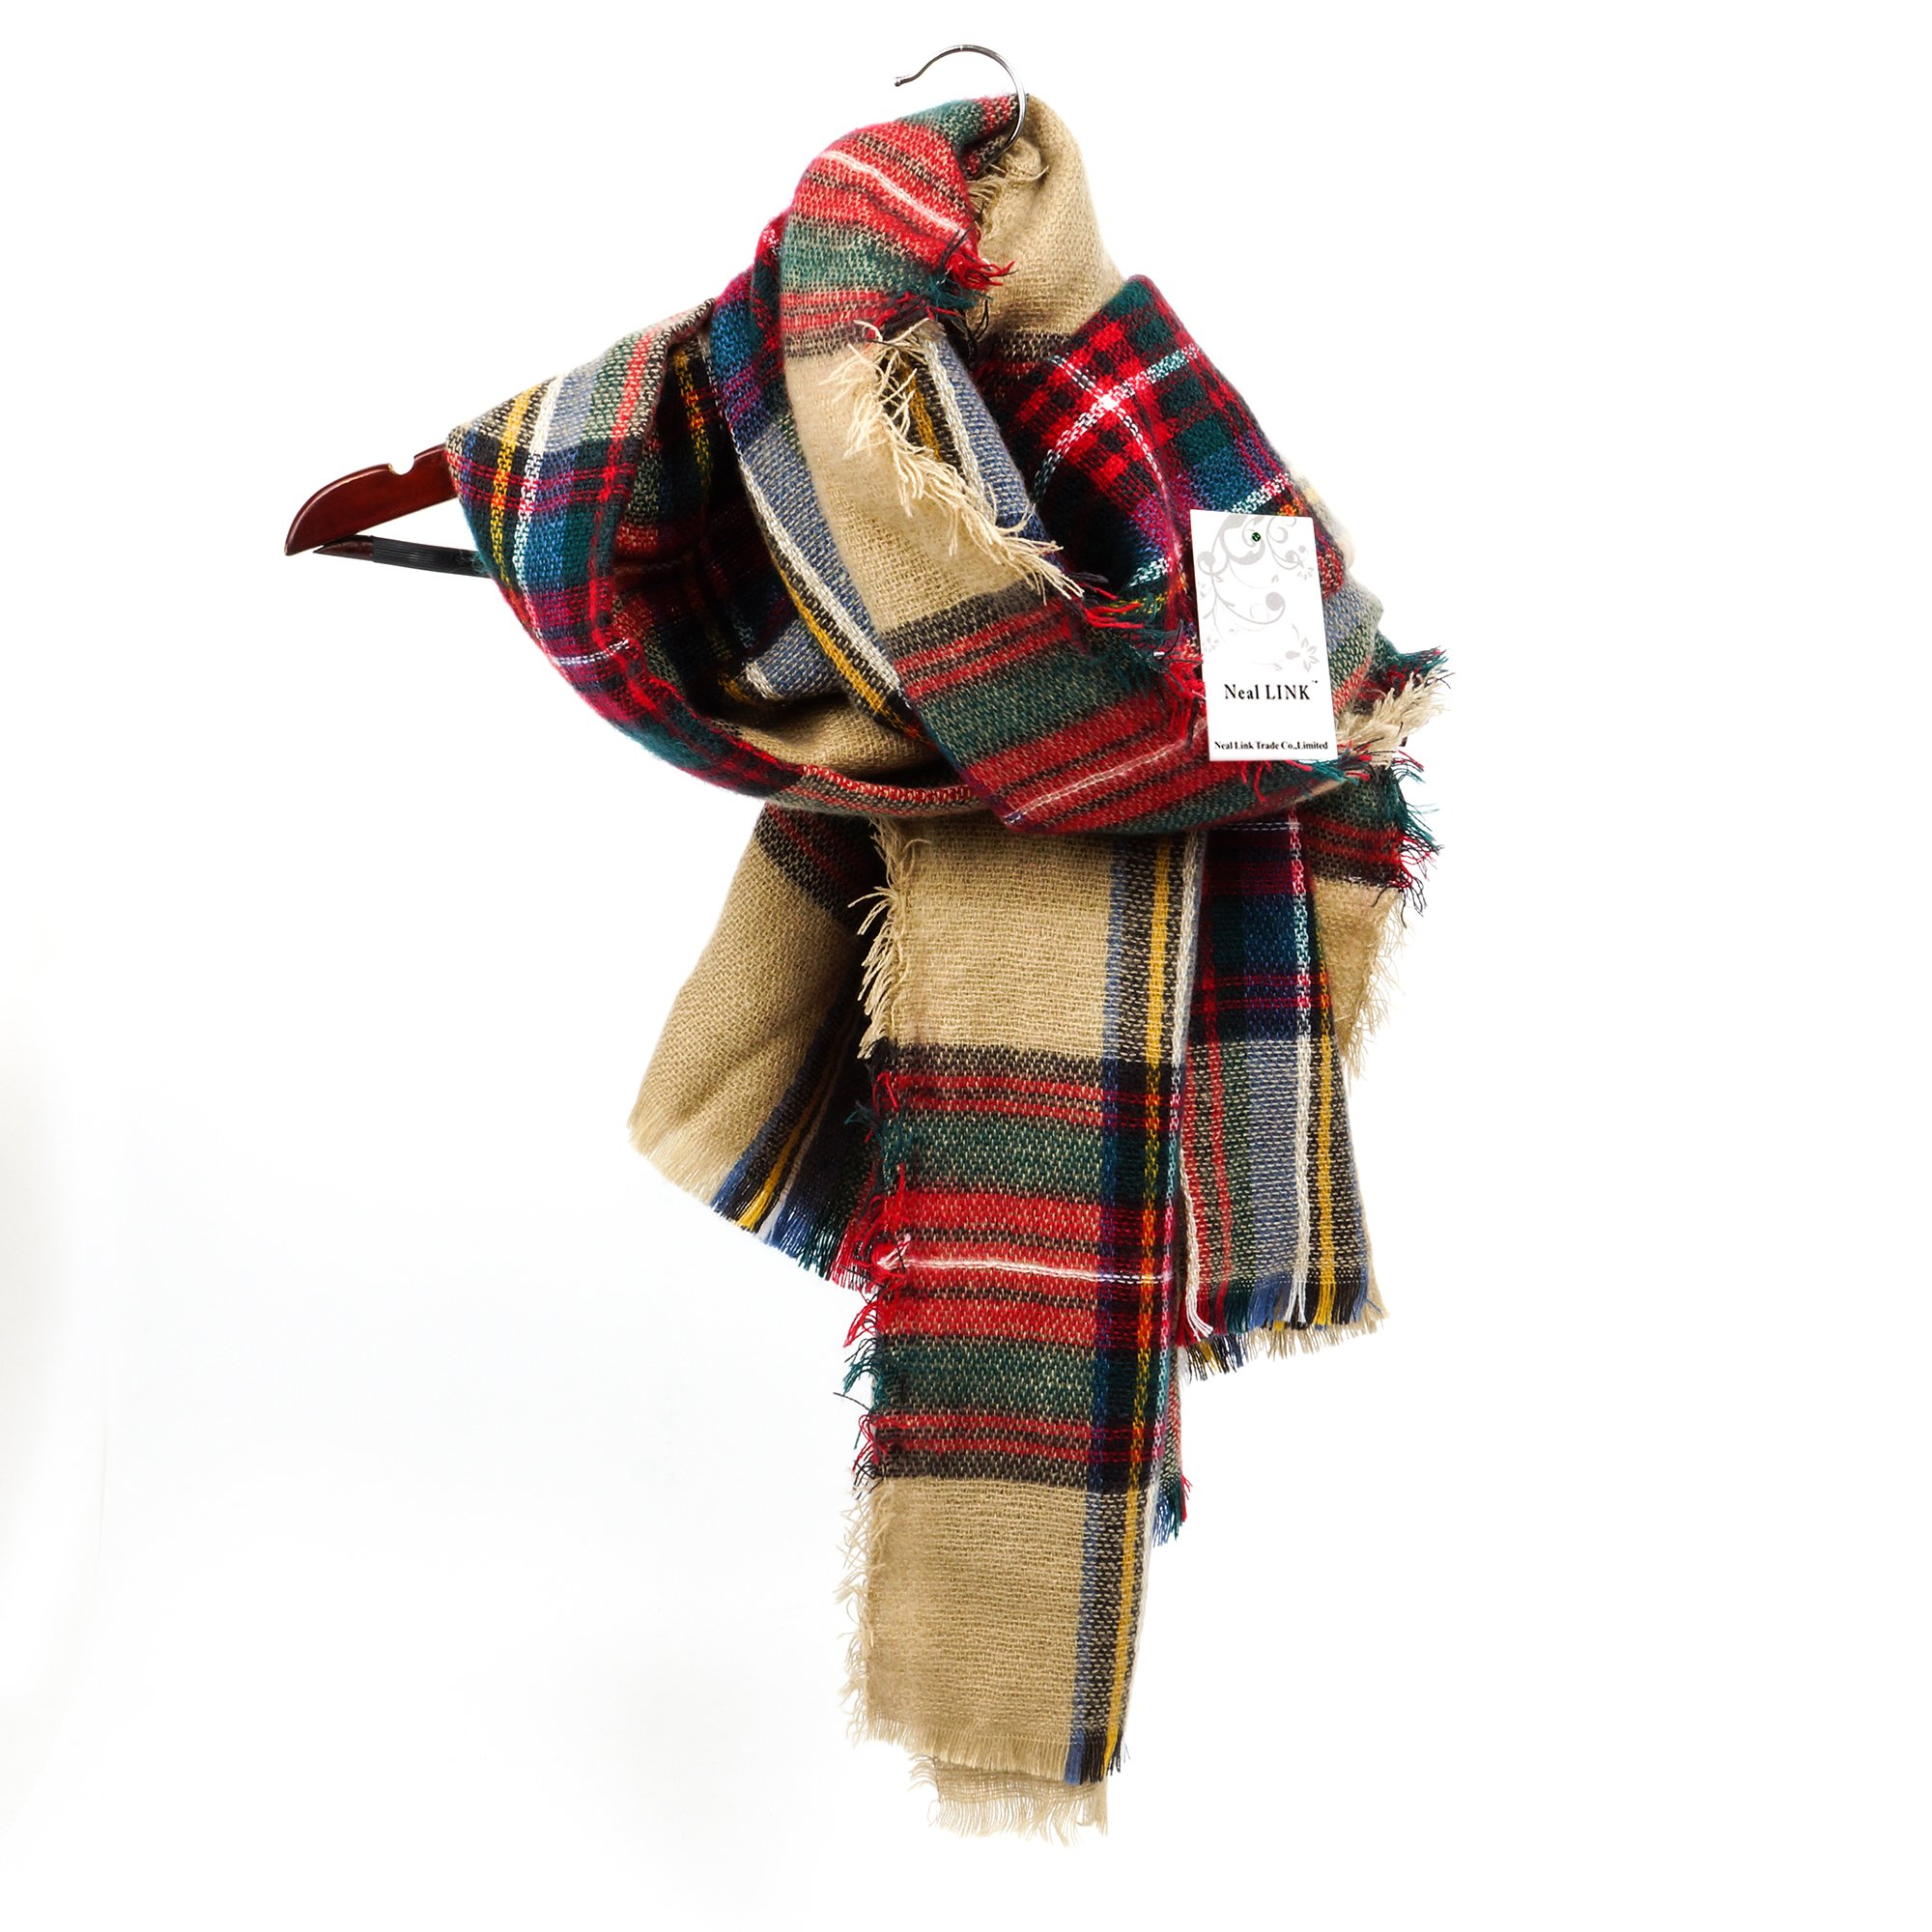 Women's Cozy Tartan Blanket Scarf Wrap Shawl Neck Stole Warm Plaid Checked Pashmina by Neal LINK (Image #1)